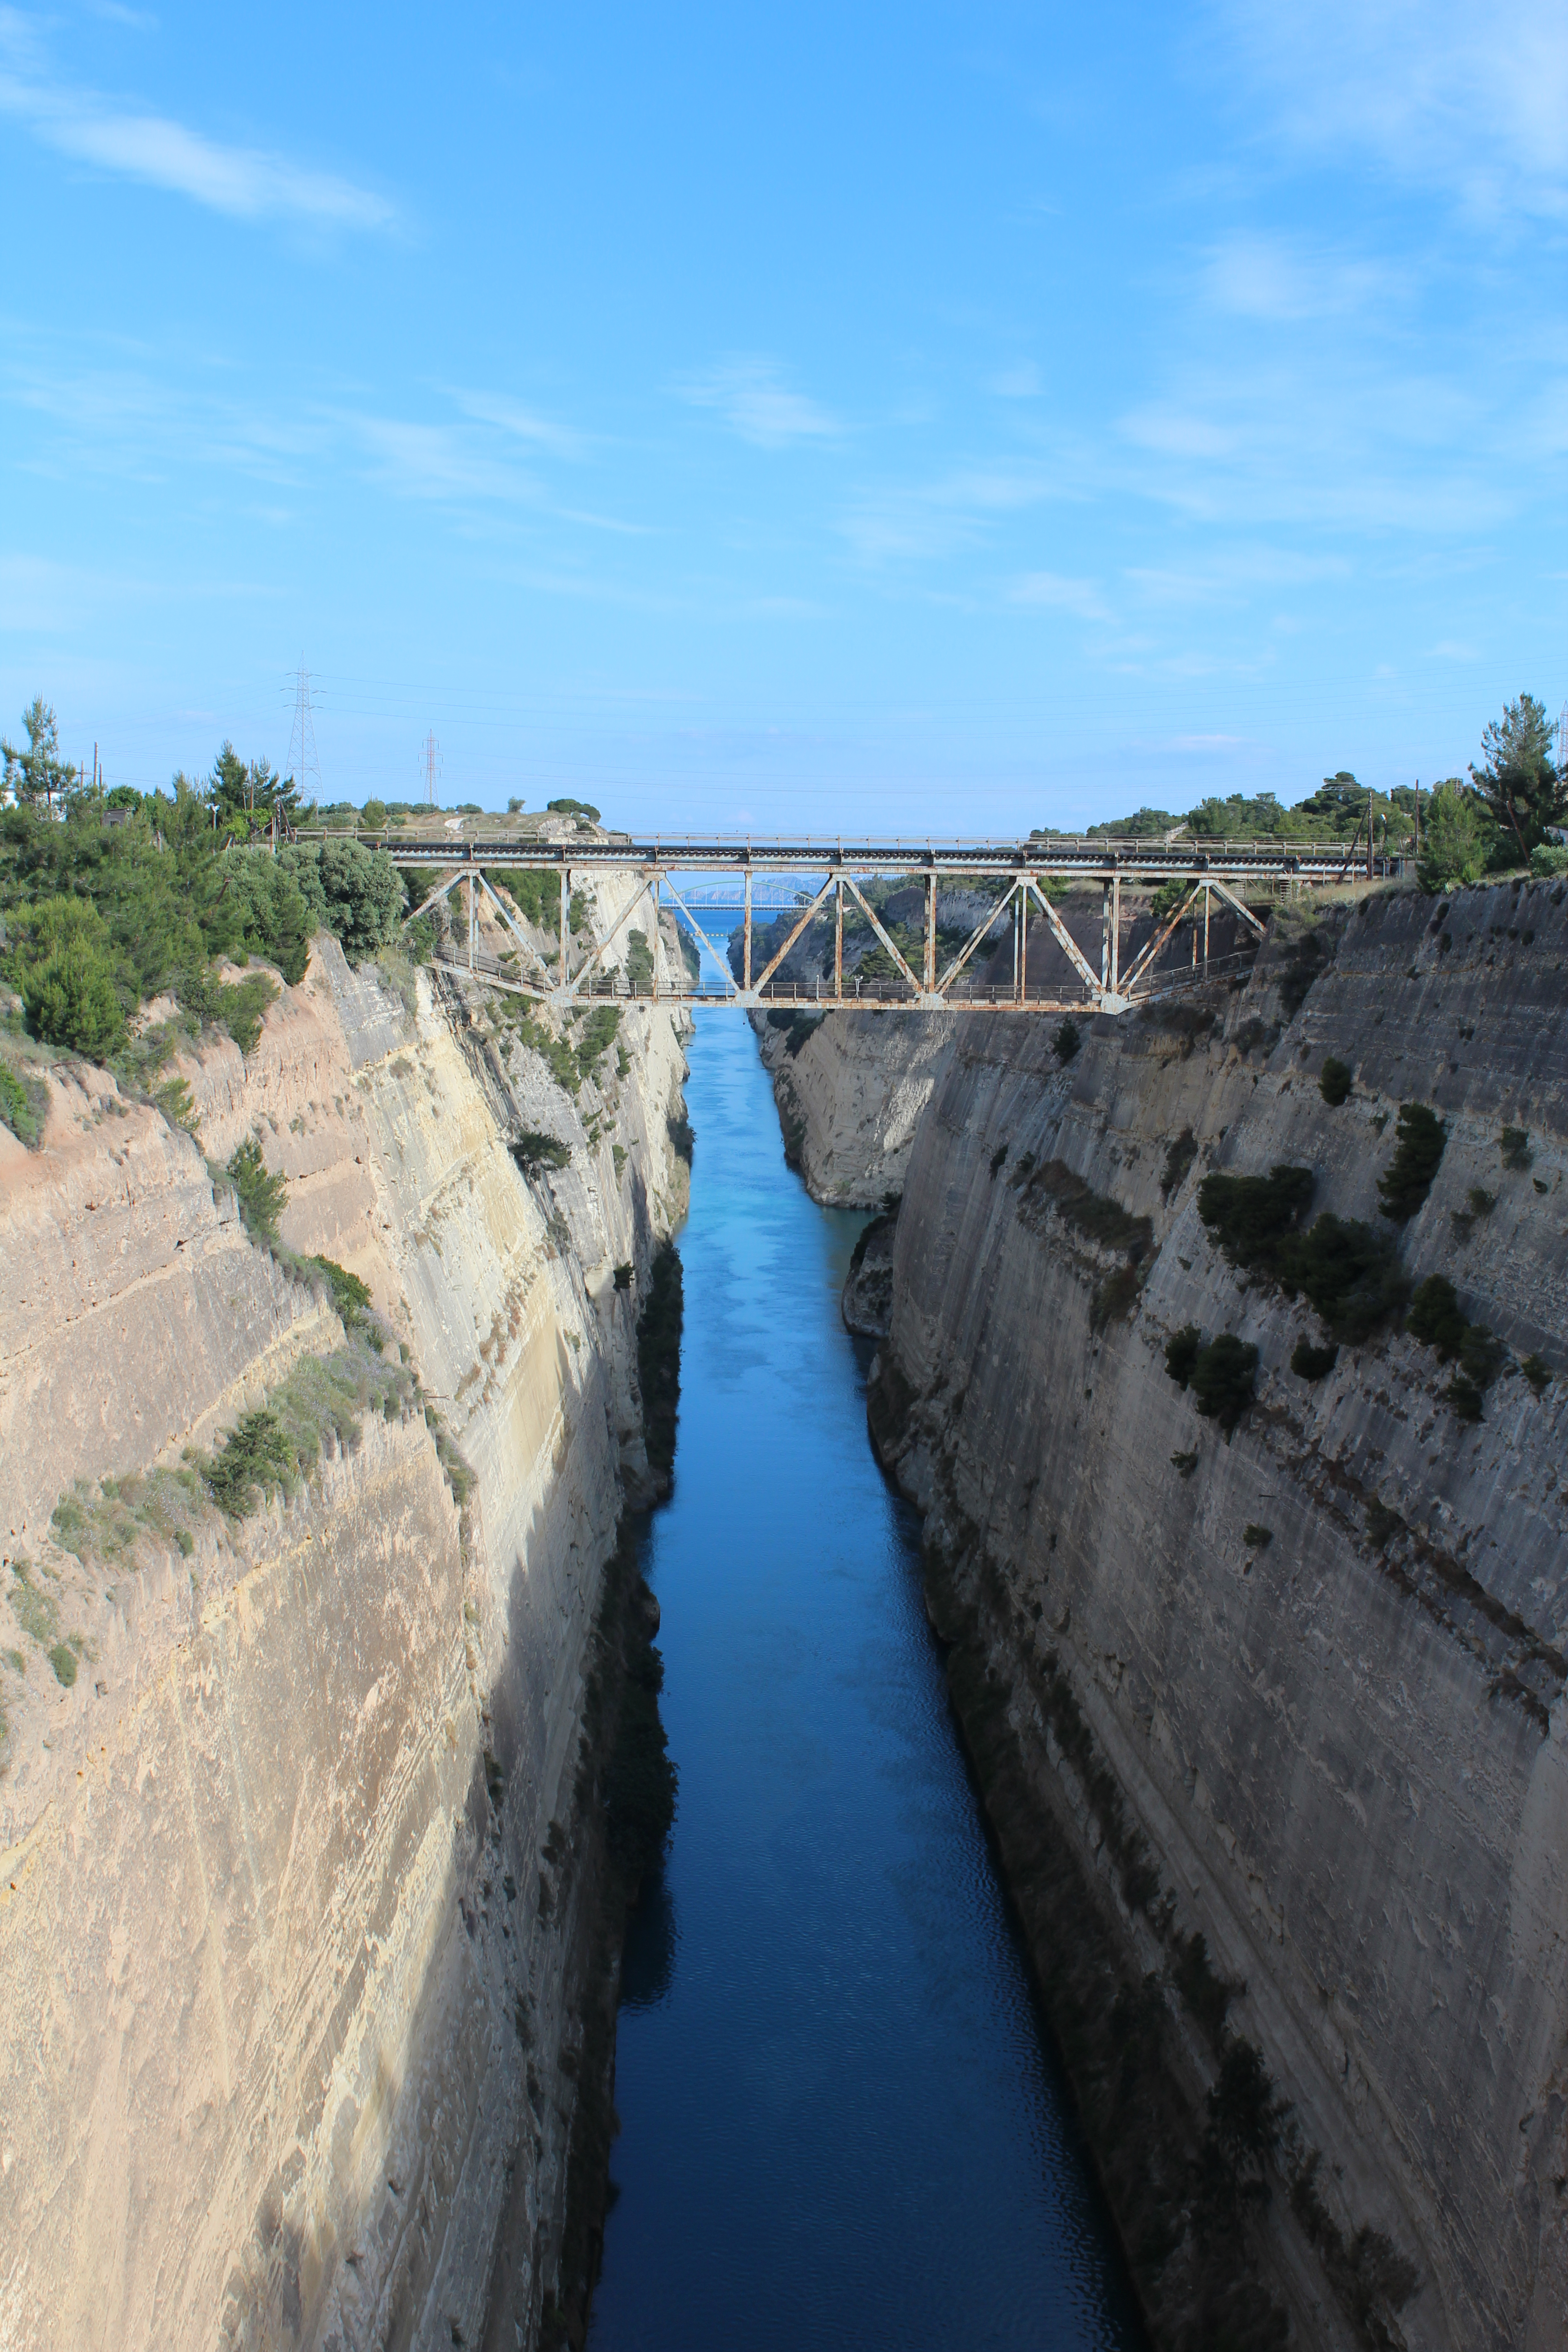 History of the Corinth Canal